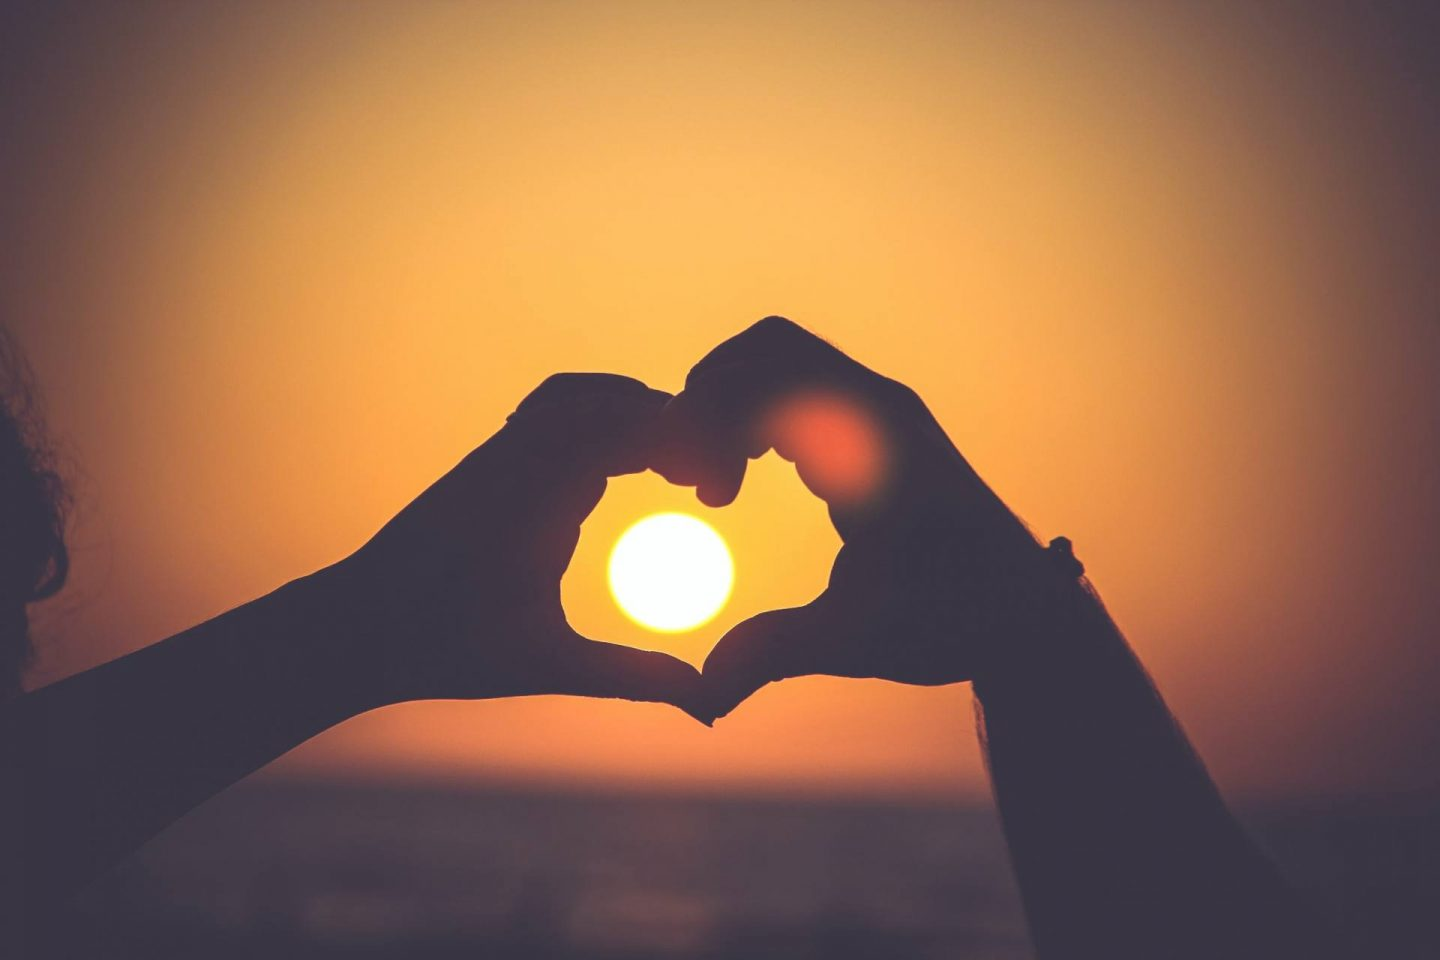 """wo people hold their hands up in front of a sunset, making a """"heart"""" shape."""